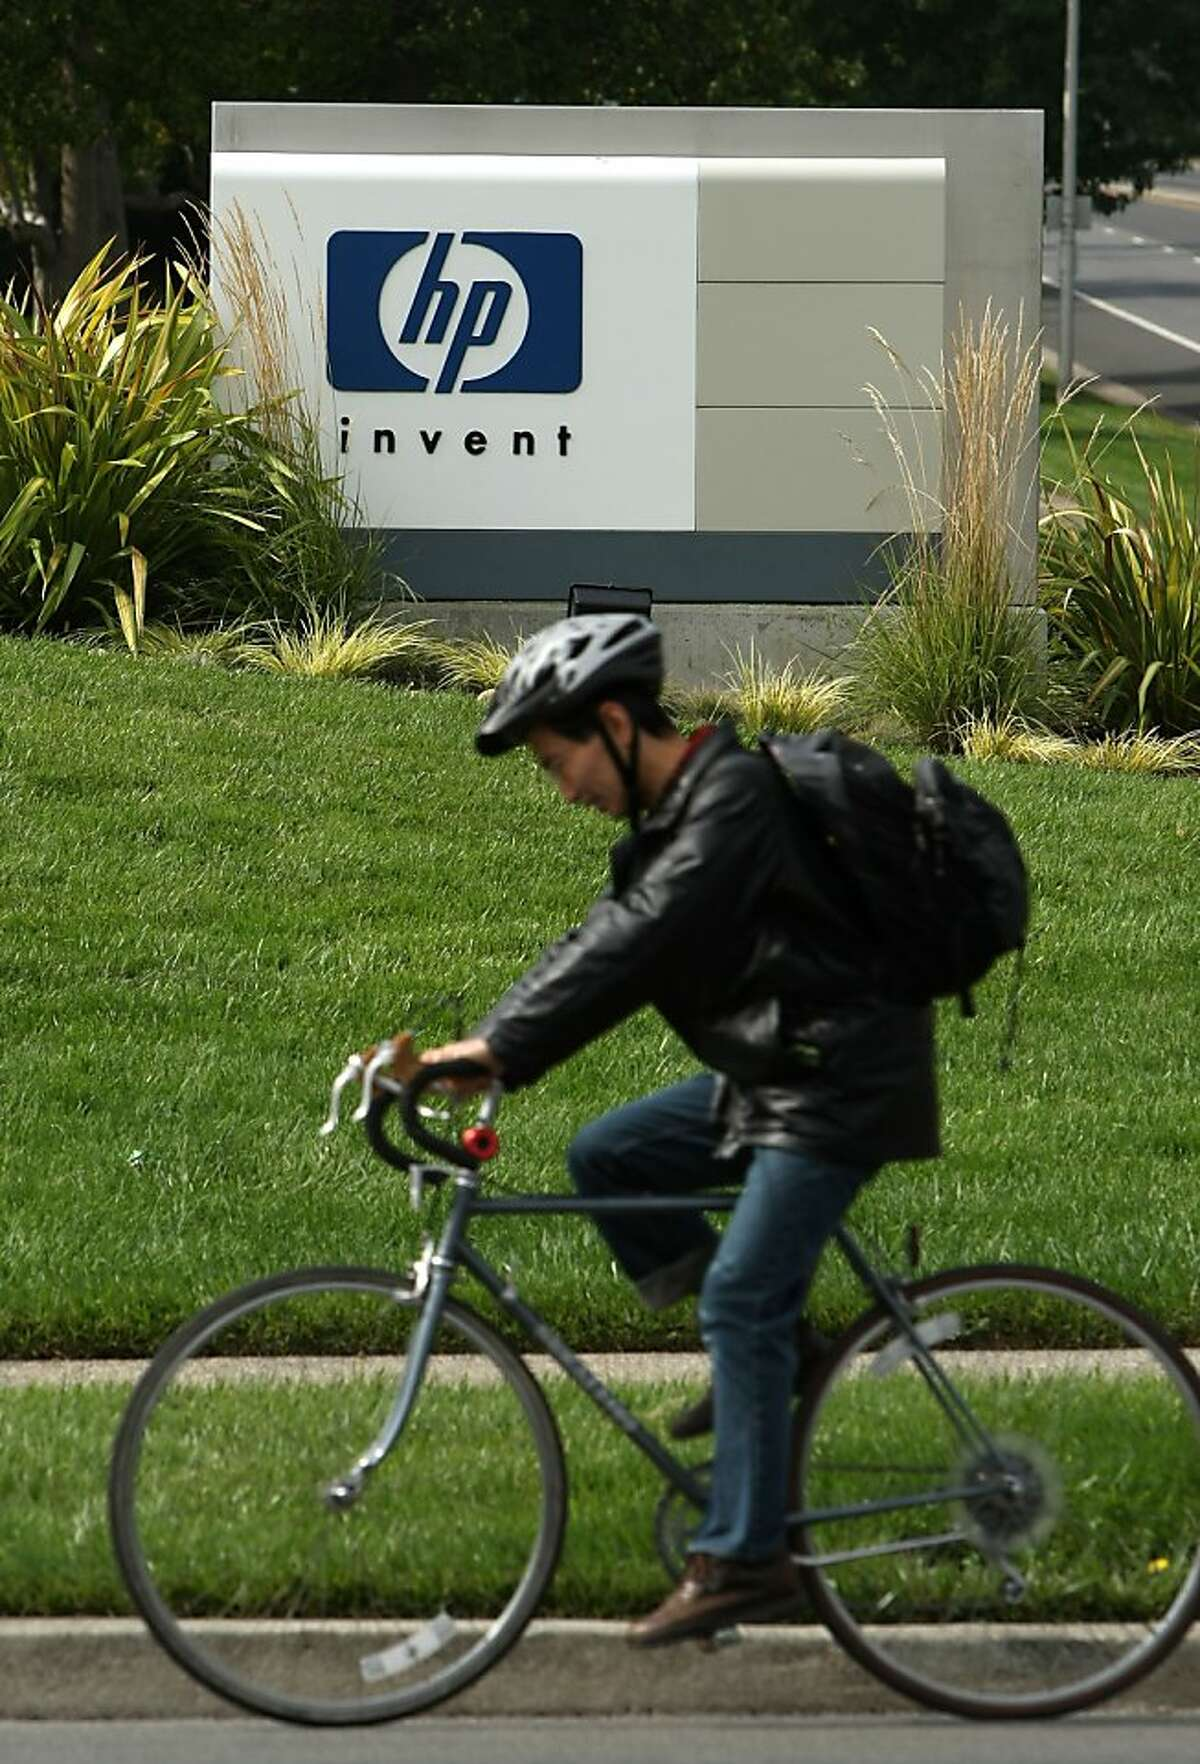 Hewlett-Packard Headquarters September 16, 2008 in Palo Alto, California. It was reported that shares of Hewlett-Packard plunged over 13 percent after the company disclosed serious accounting improprieties after acquiring Autonomy Corp. that led to an $8.8 billion asset-impairment charge.